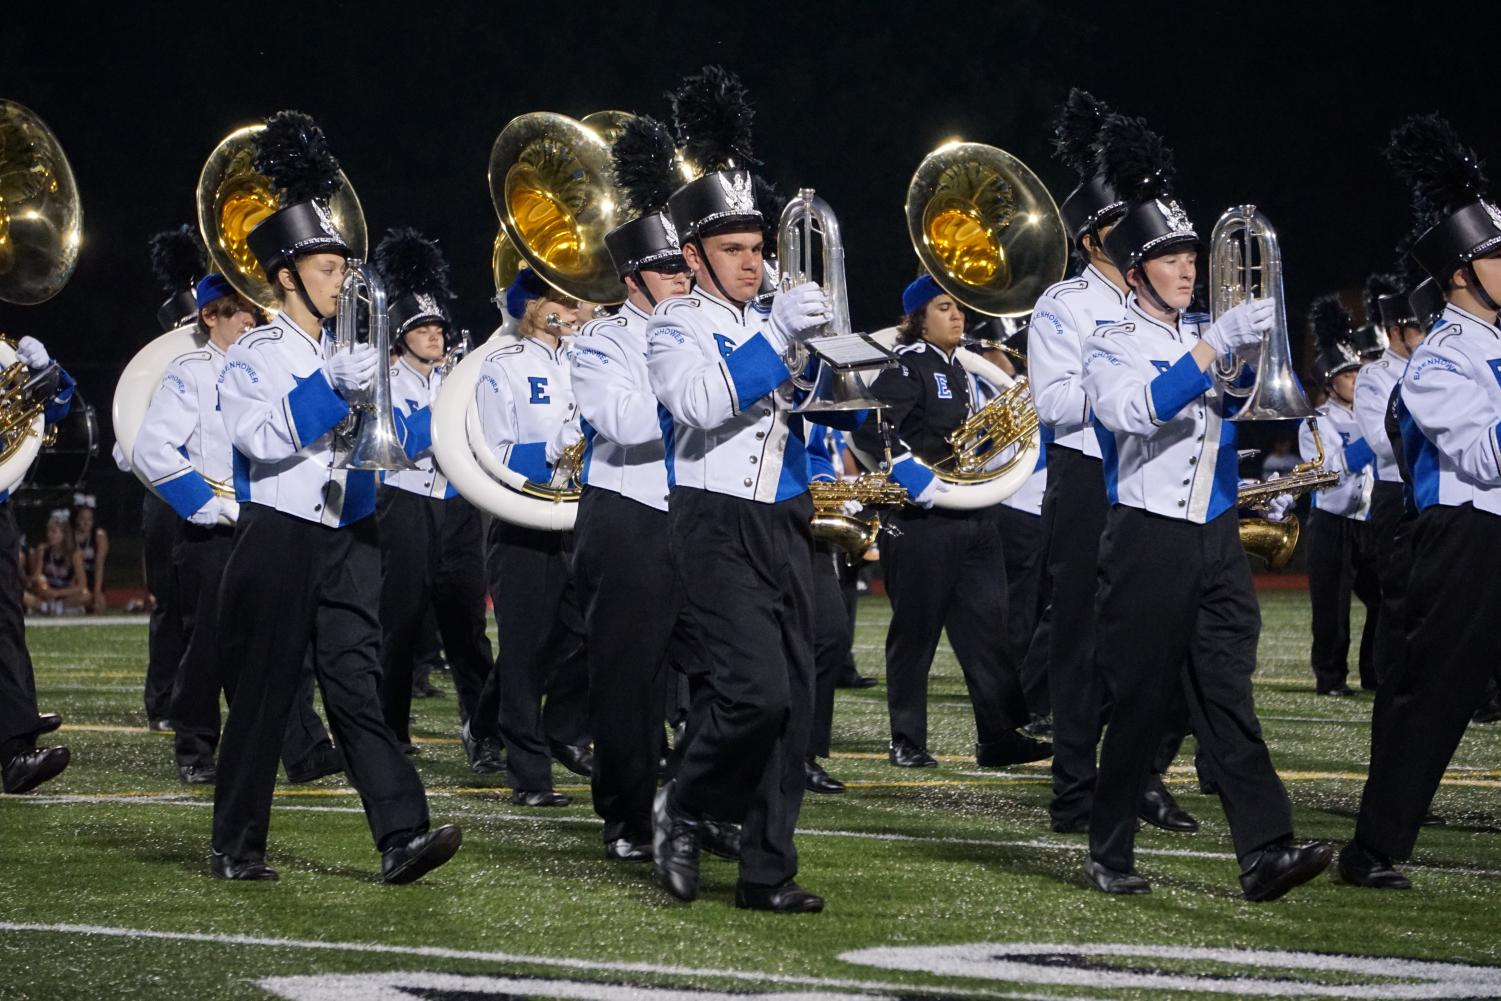 UCS bands will perform during the annual Band-A-Rama at Swinehart field. Tickets cost $5 at the gate.